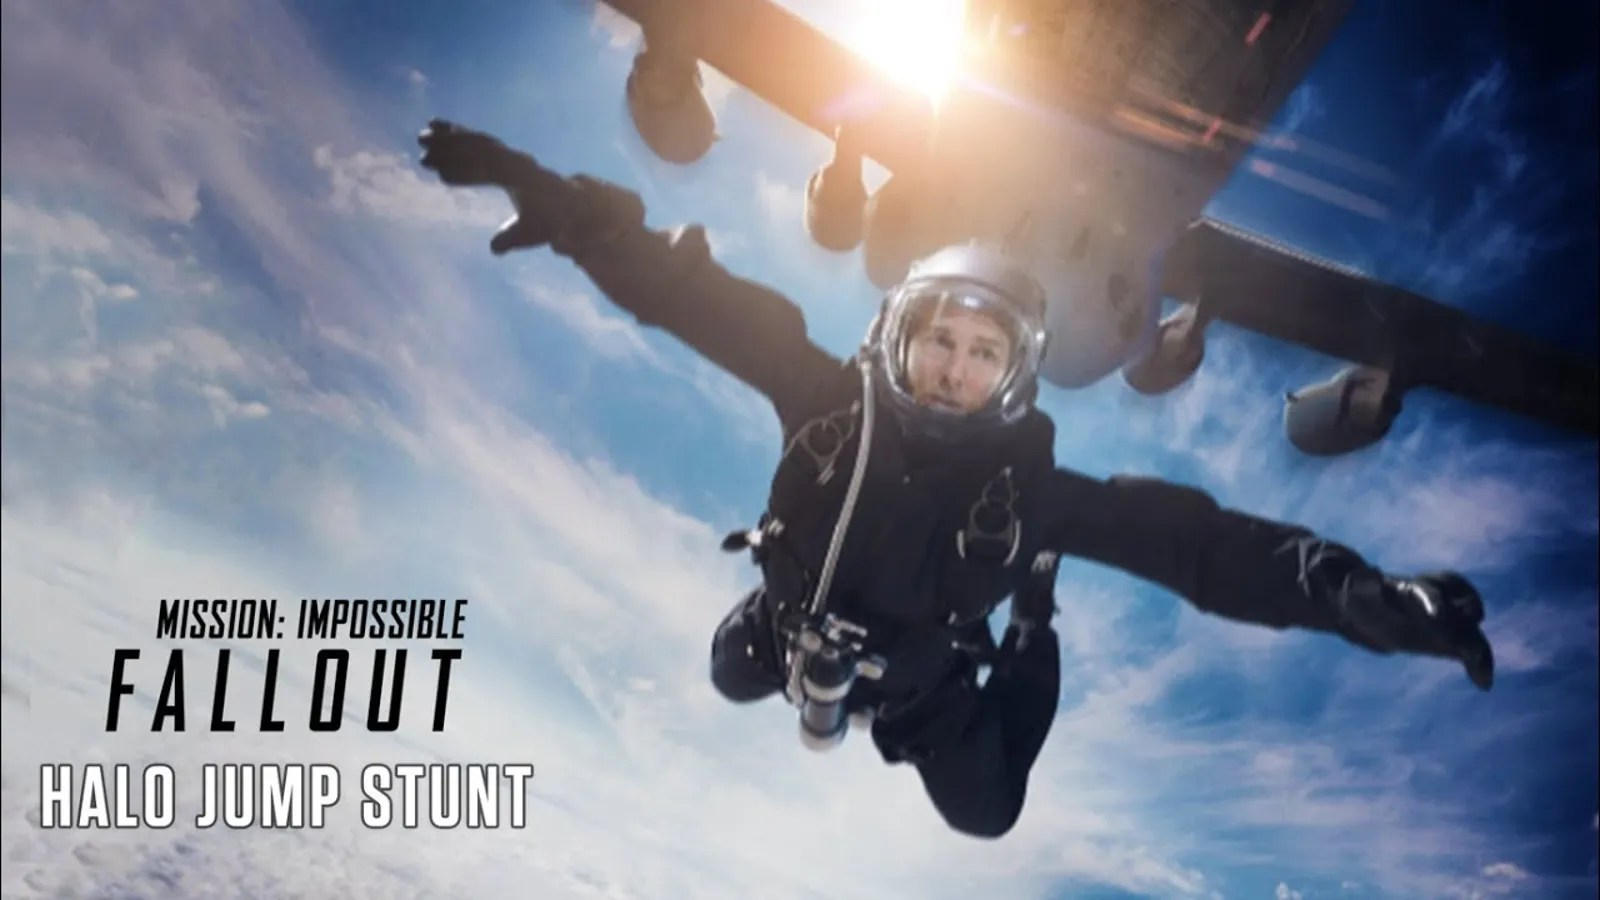 Why Do We Fall Wallpaper Tom Cruise Pulls Off Mission Impossible Fallout Stunt On Video